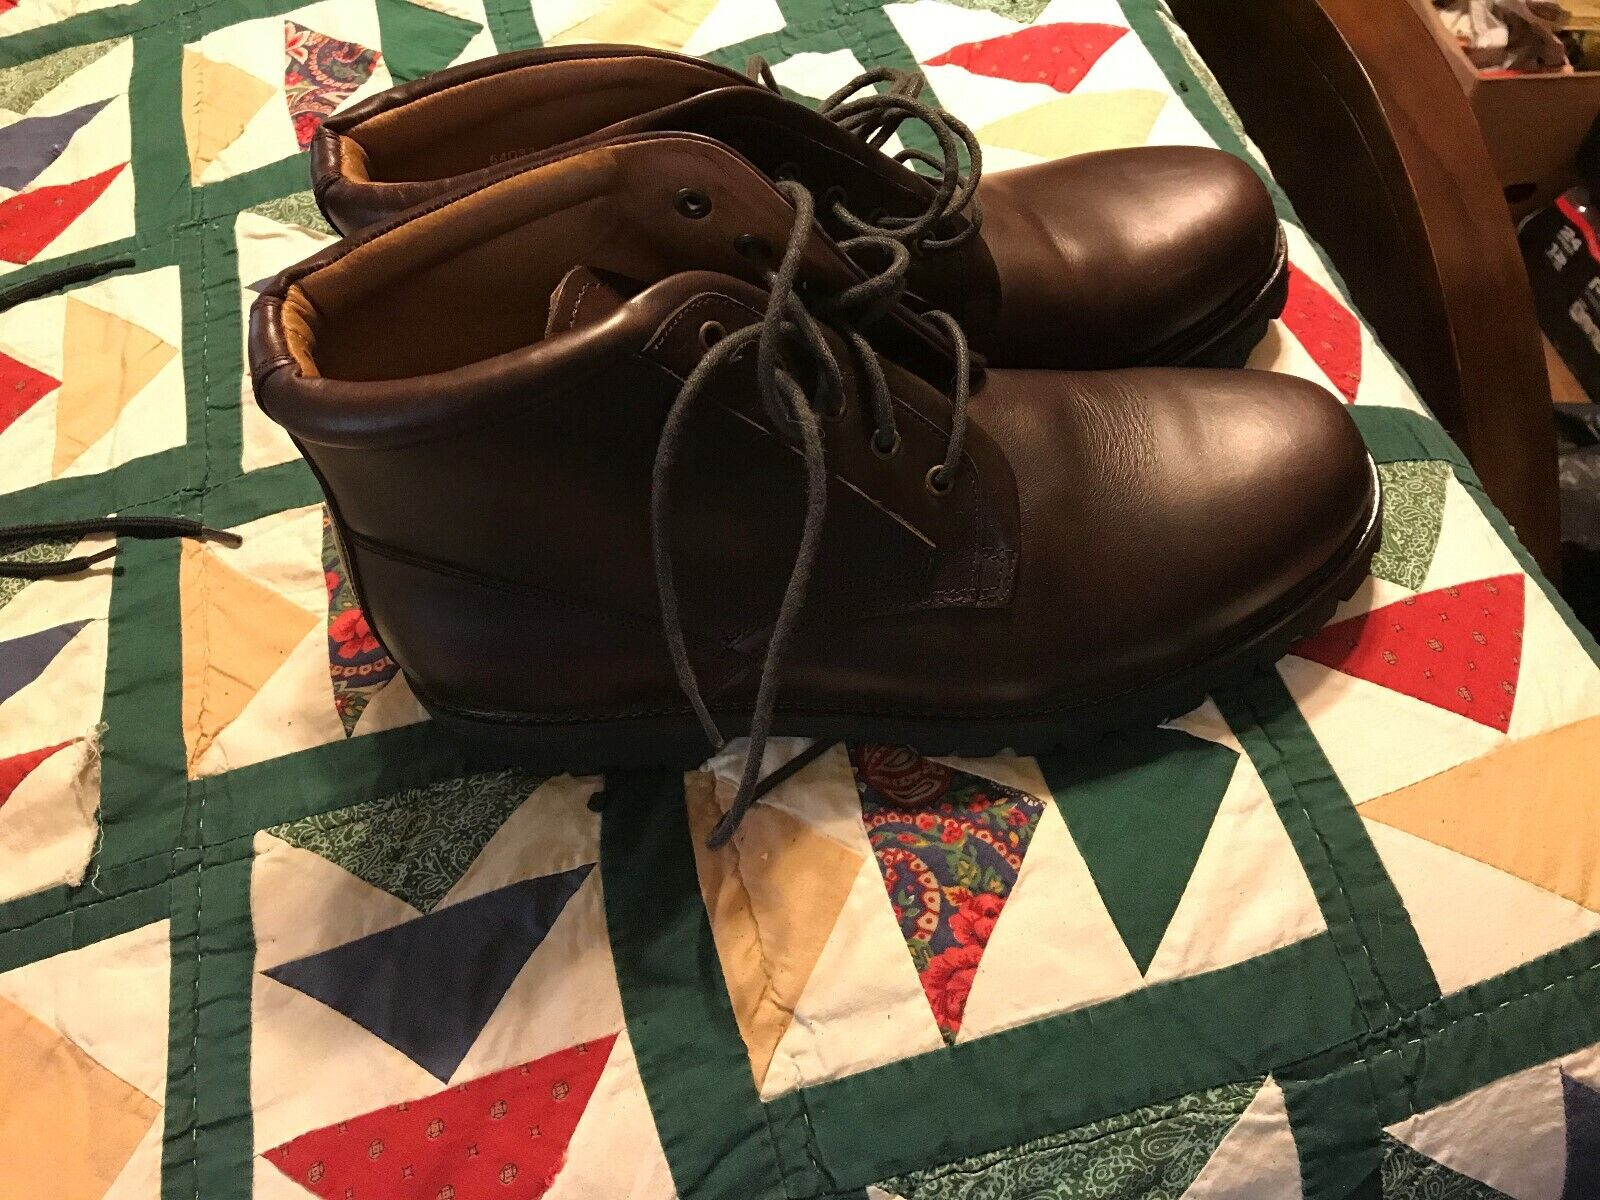 French Shriner Rangeley Mens Ankle Lace Ups Boots Brown Leather 11M  New No Box